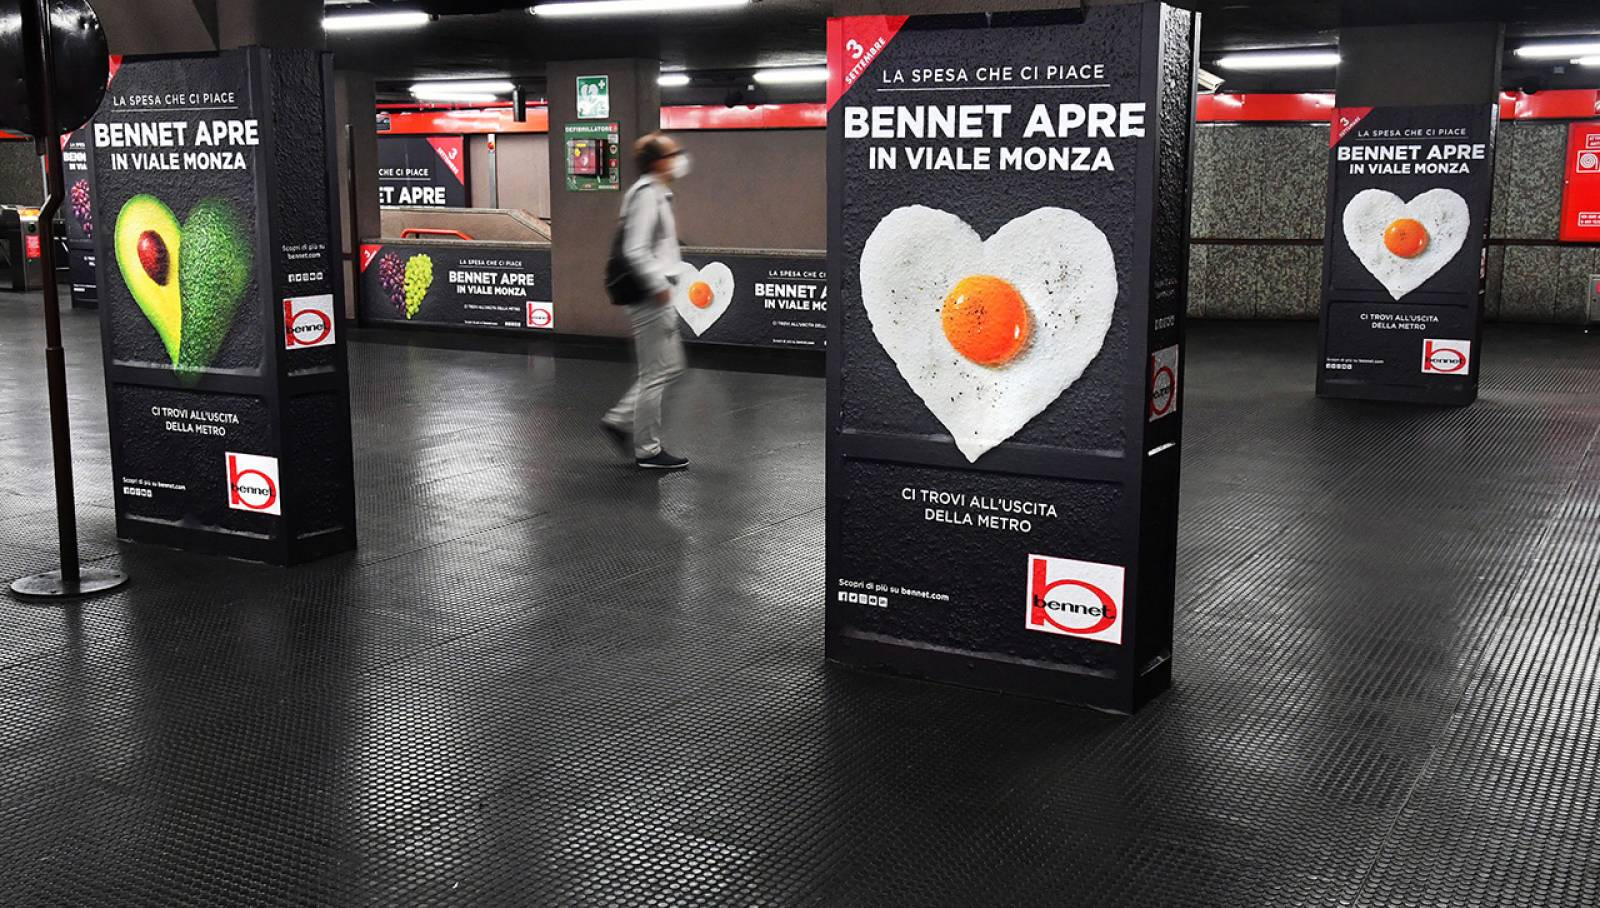 IGPDecaux Milano Station Domination per Bennet